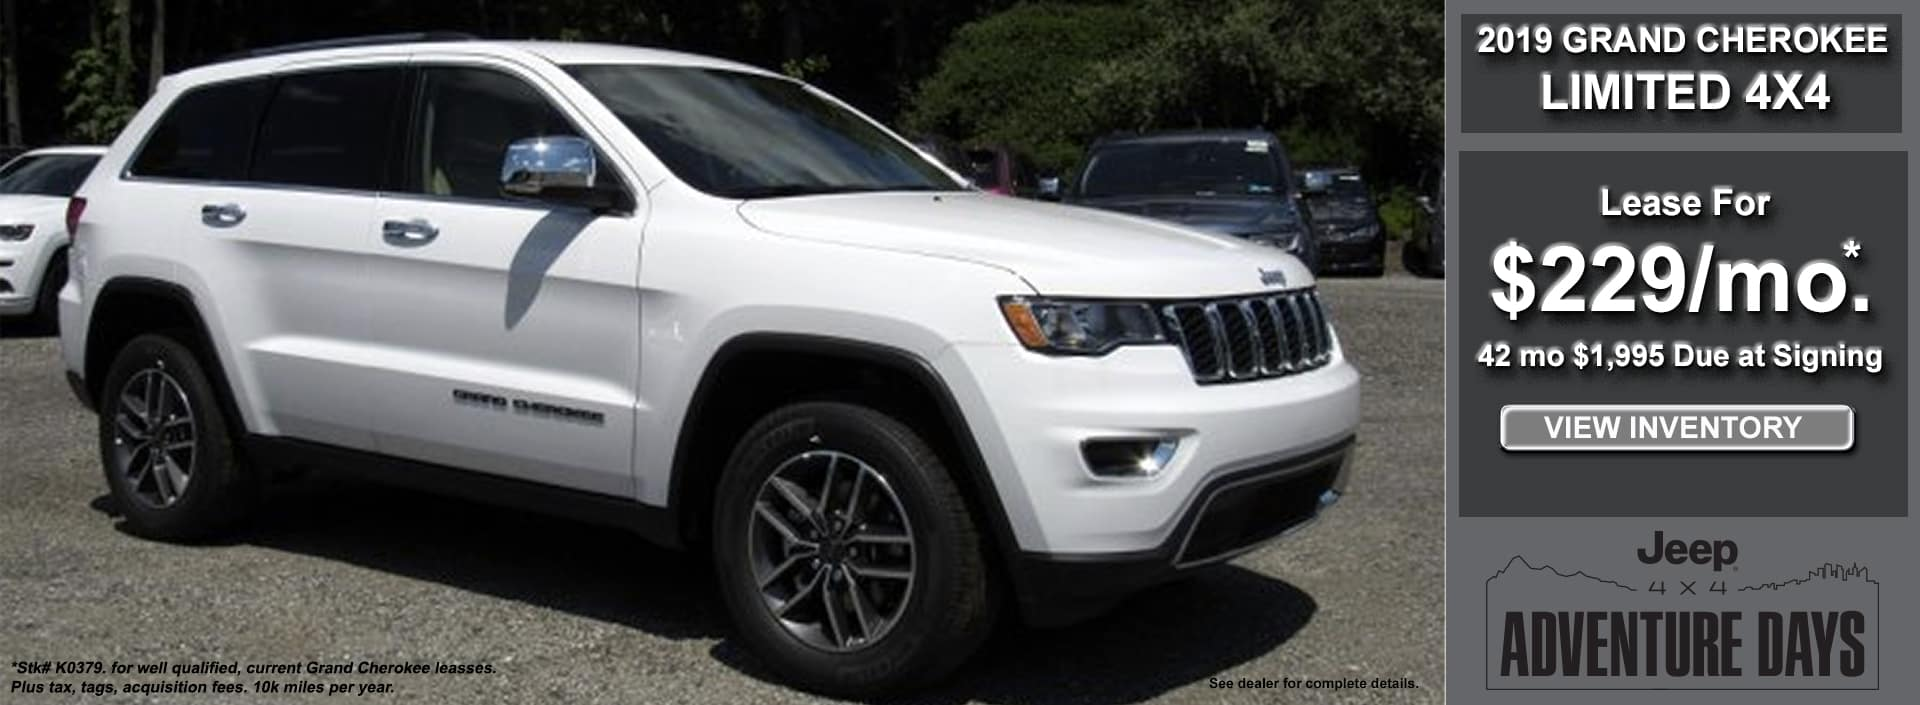 Grand Cherokee Limited Lease October 2019